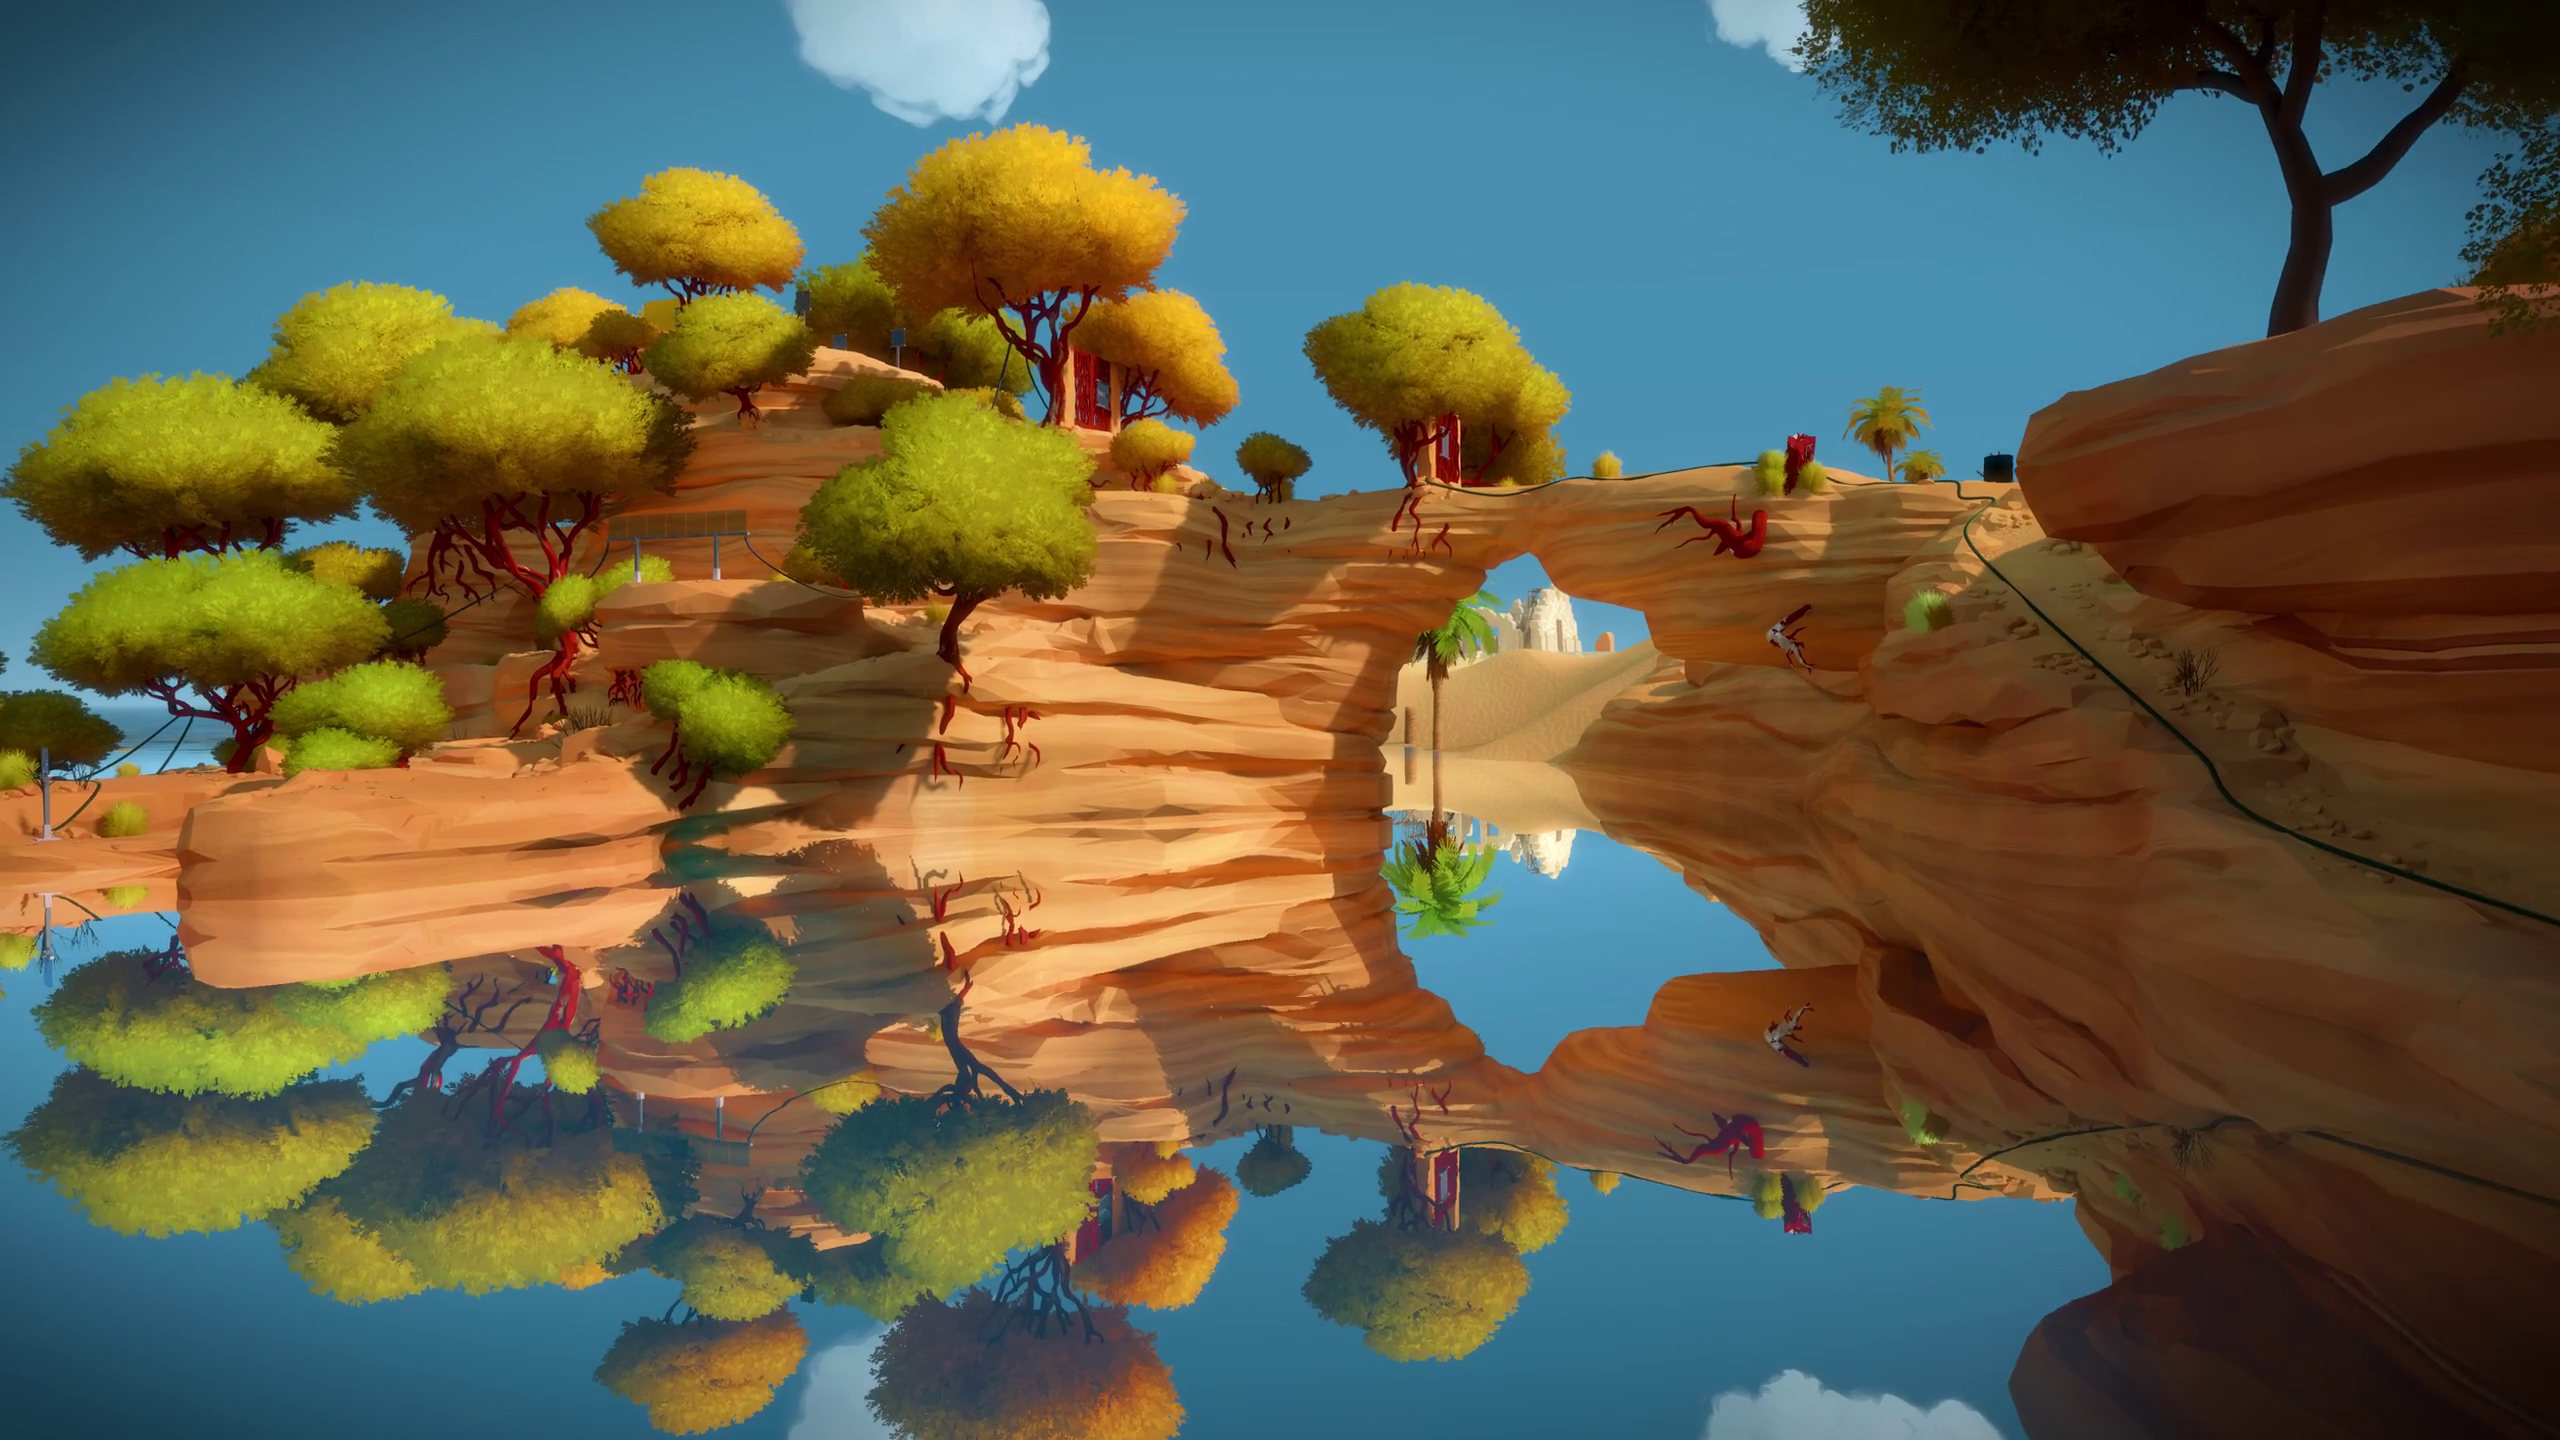 The Witness HD Wallpaper Background Image 2560x1440 ID 2560x1440